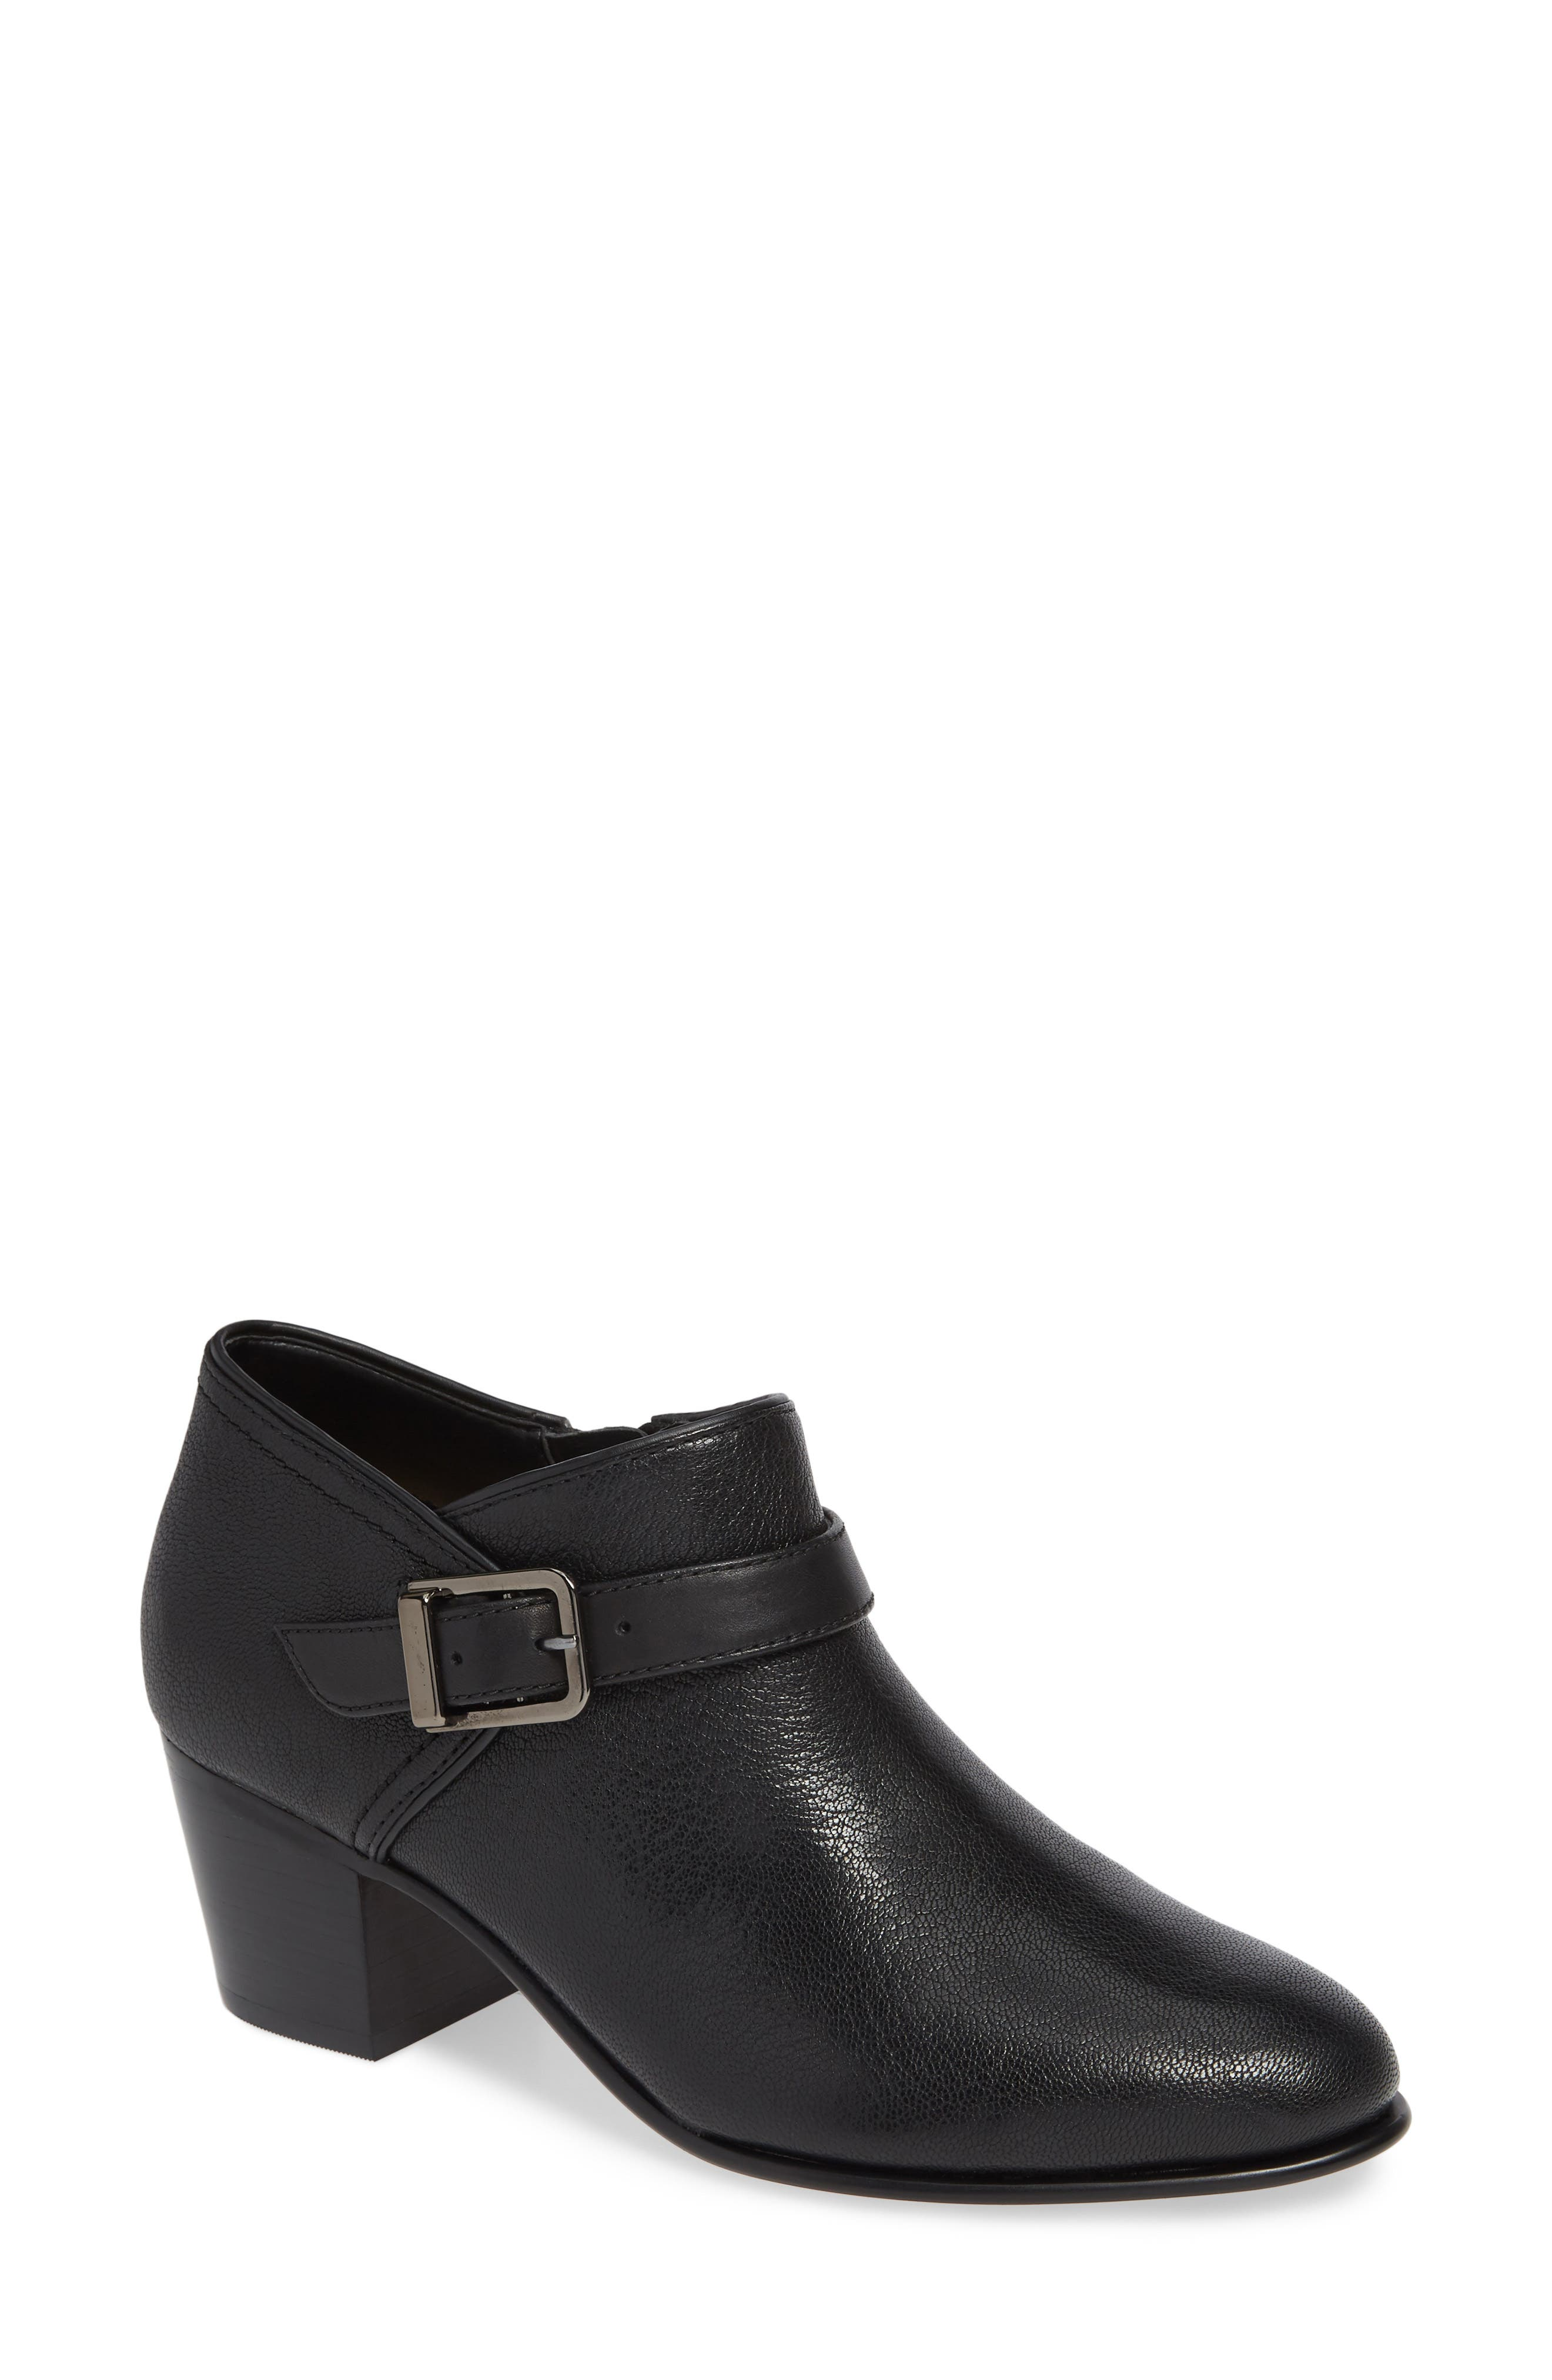 CLARKS<SUP>®</SUP> Maypearl Milla Bootie, Main, color, BLACK TUMBLED LEATHER